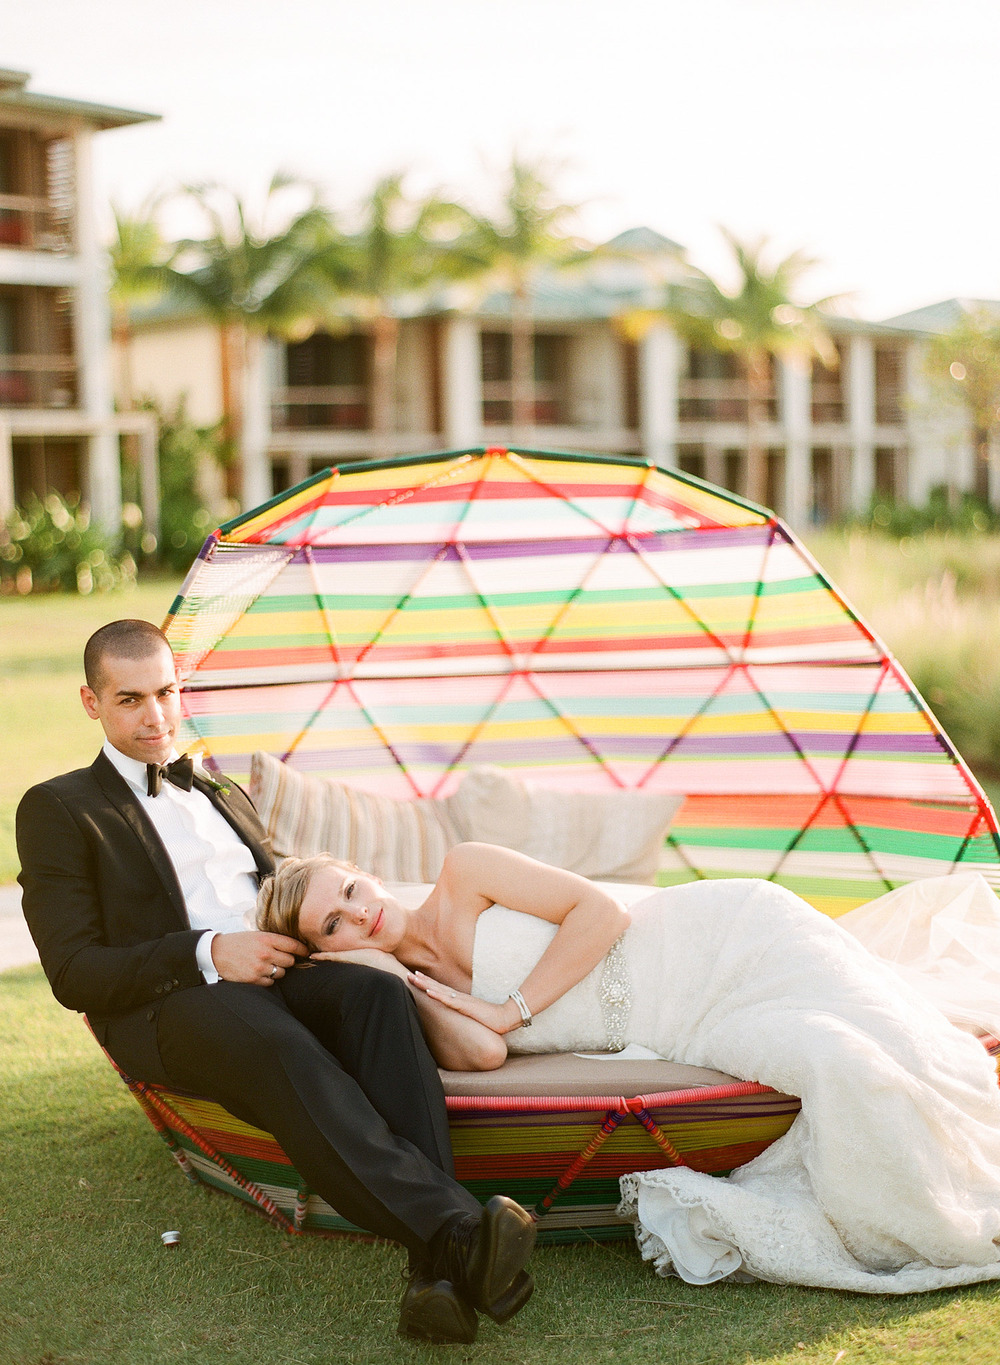 Destination Wedding Photographer Lexia Frank photographs this beautiful modern Vieques Island Wedding at the W hotel off the coast of Puerto Rico-  bride and groom lounge in a modern neon lounge chair on the beach as lexia photographs the wedding on film